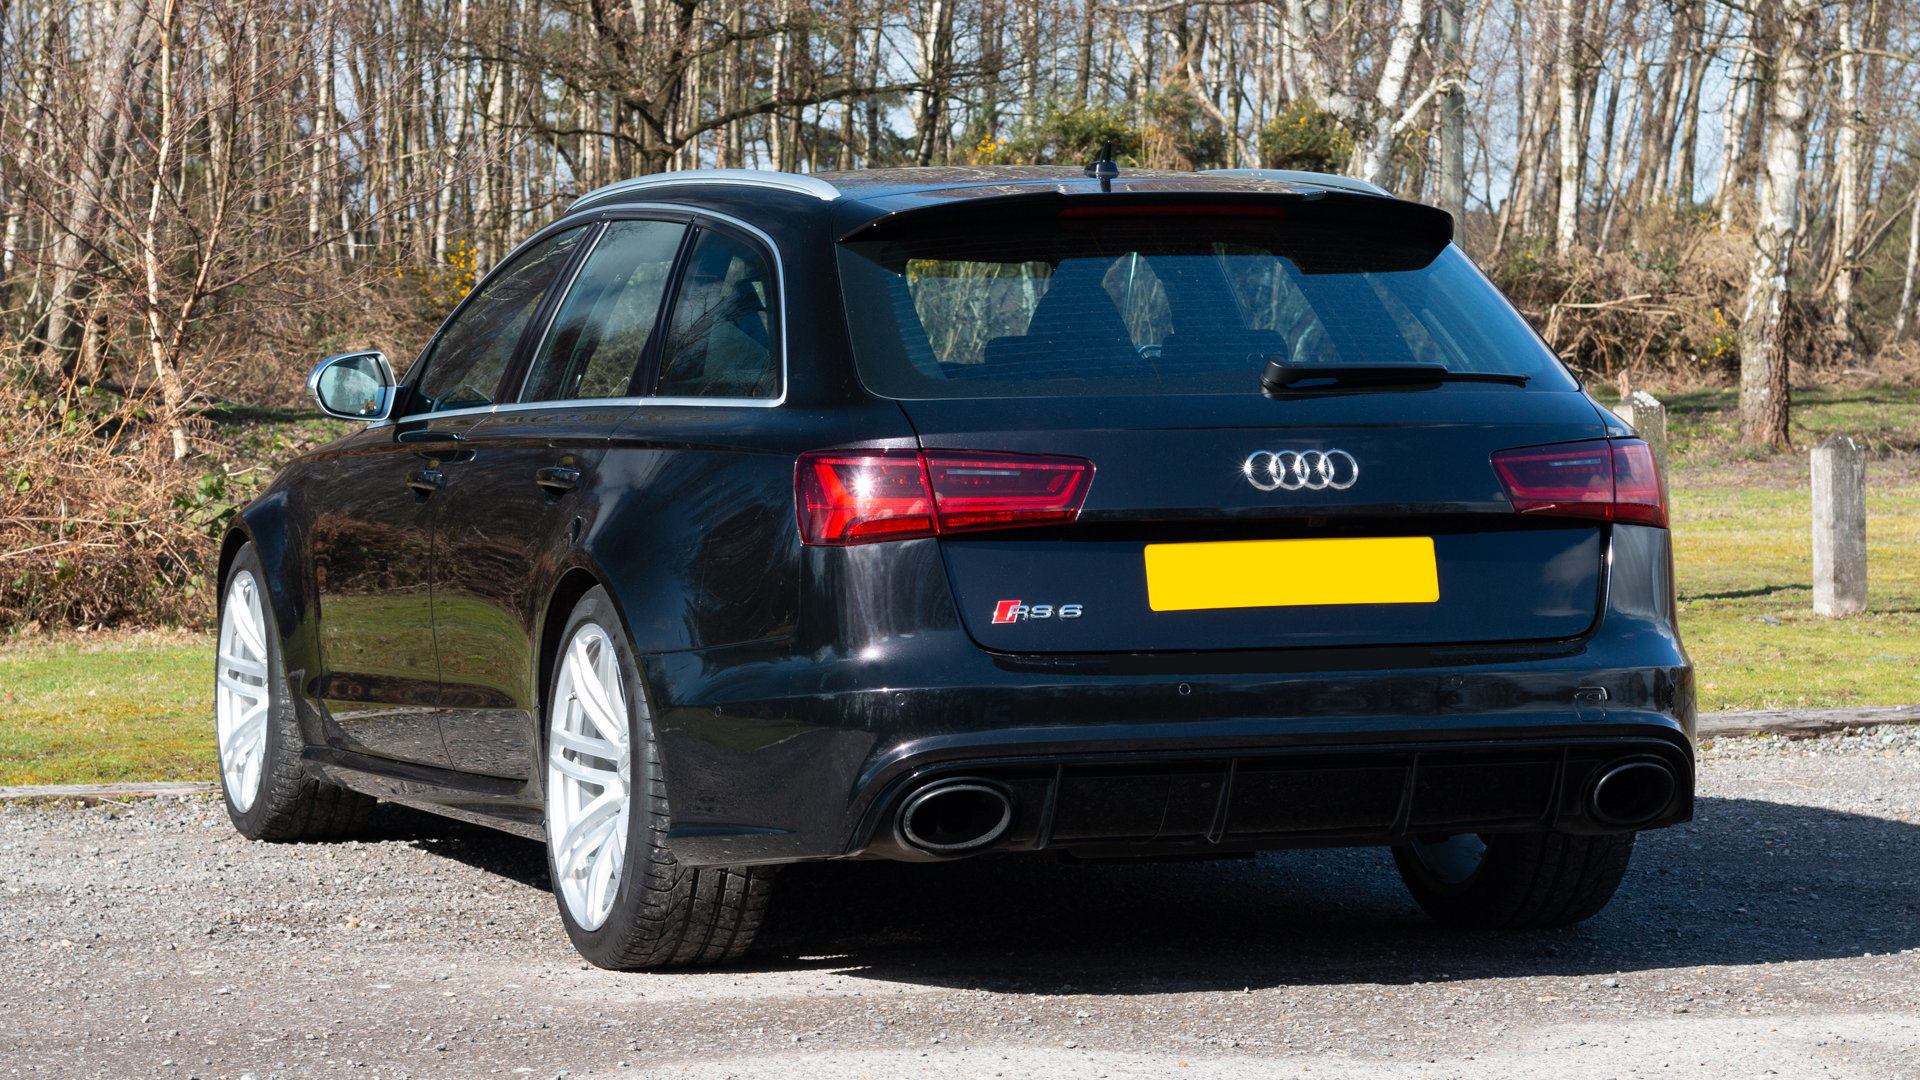 2017 Audi RS6 4.0 V8 TFSI Quattro For Sale (picture 2 of 6)